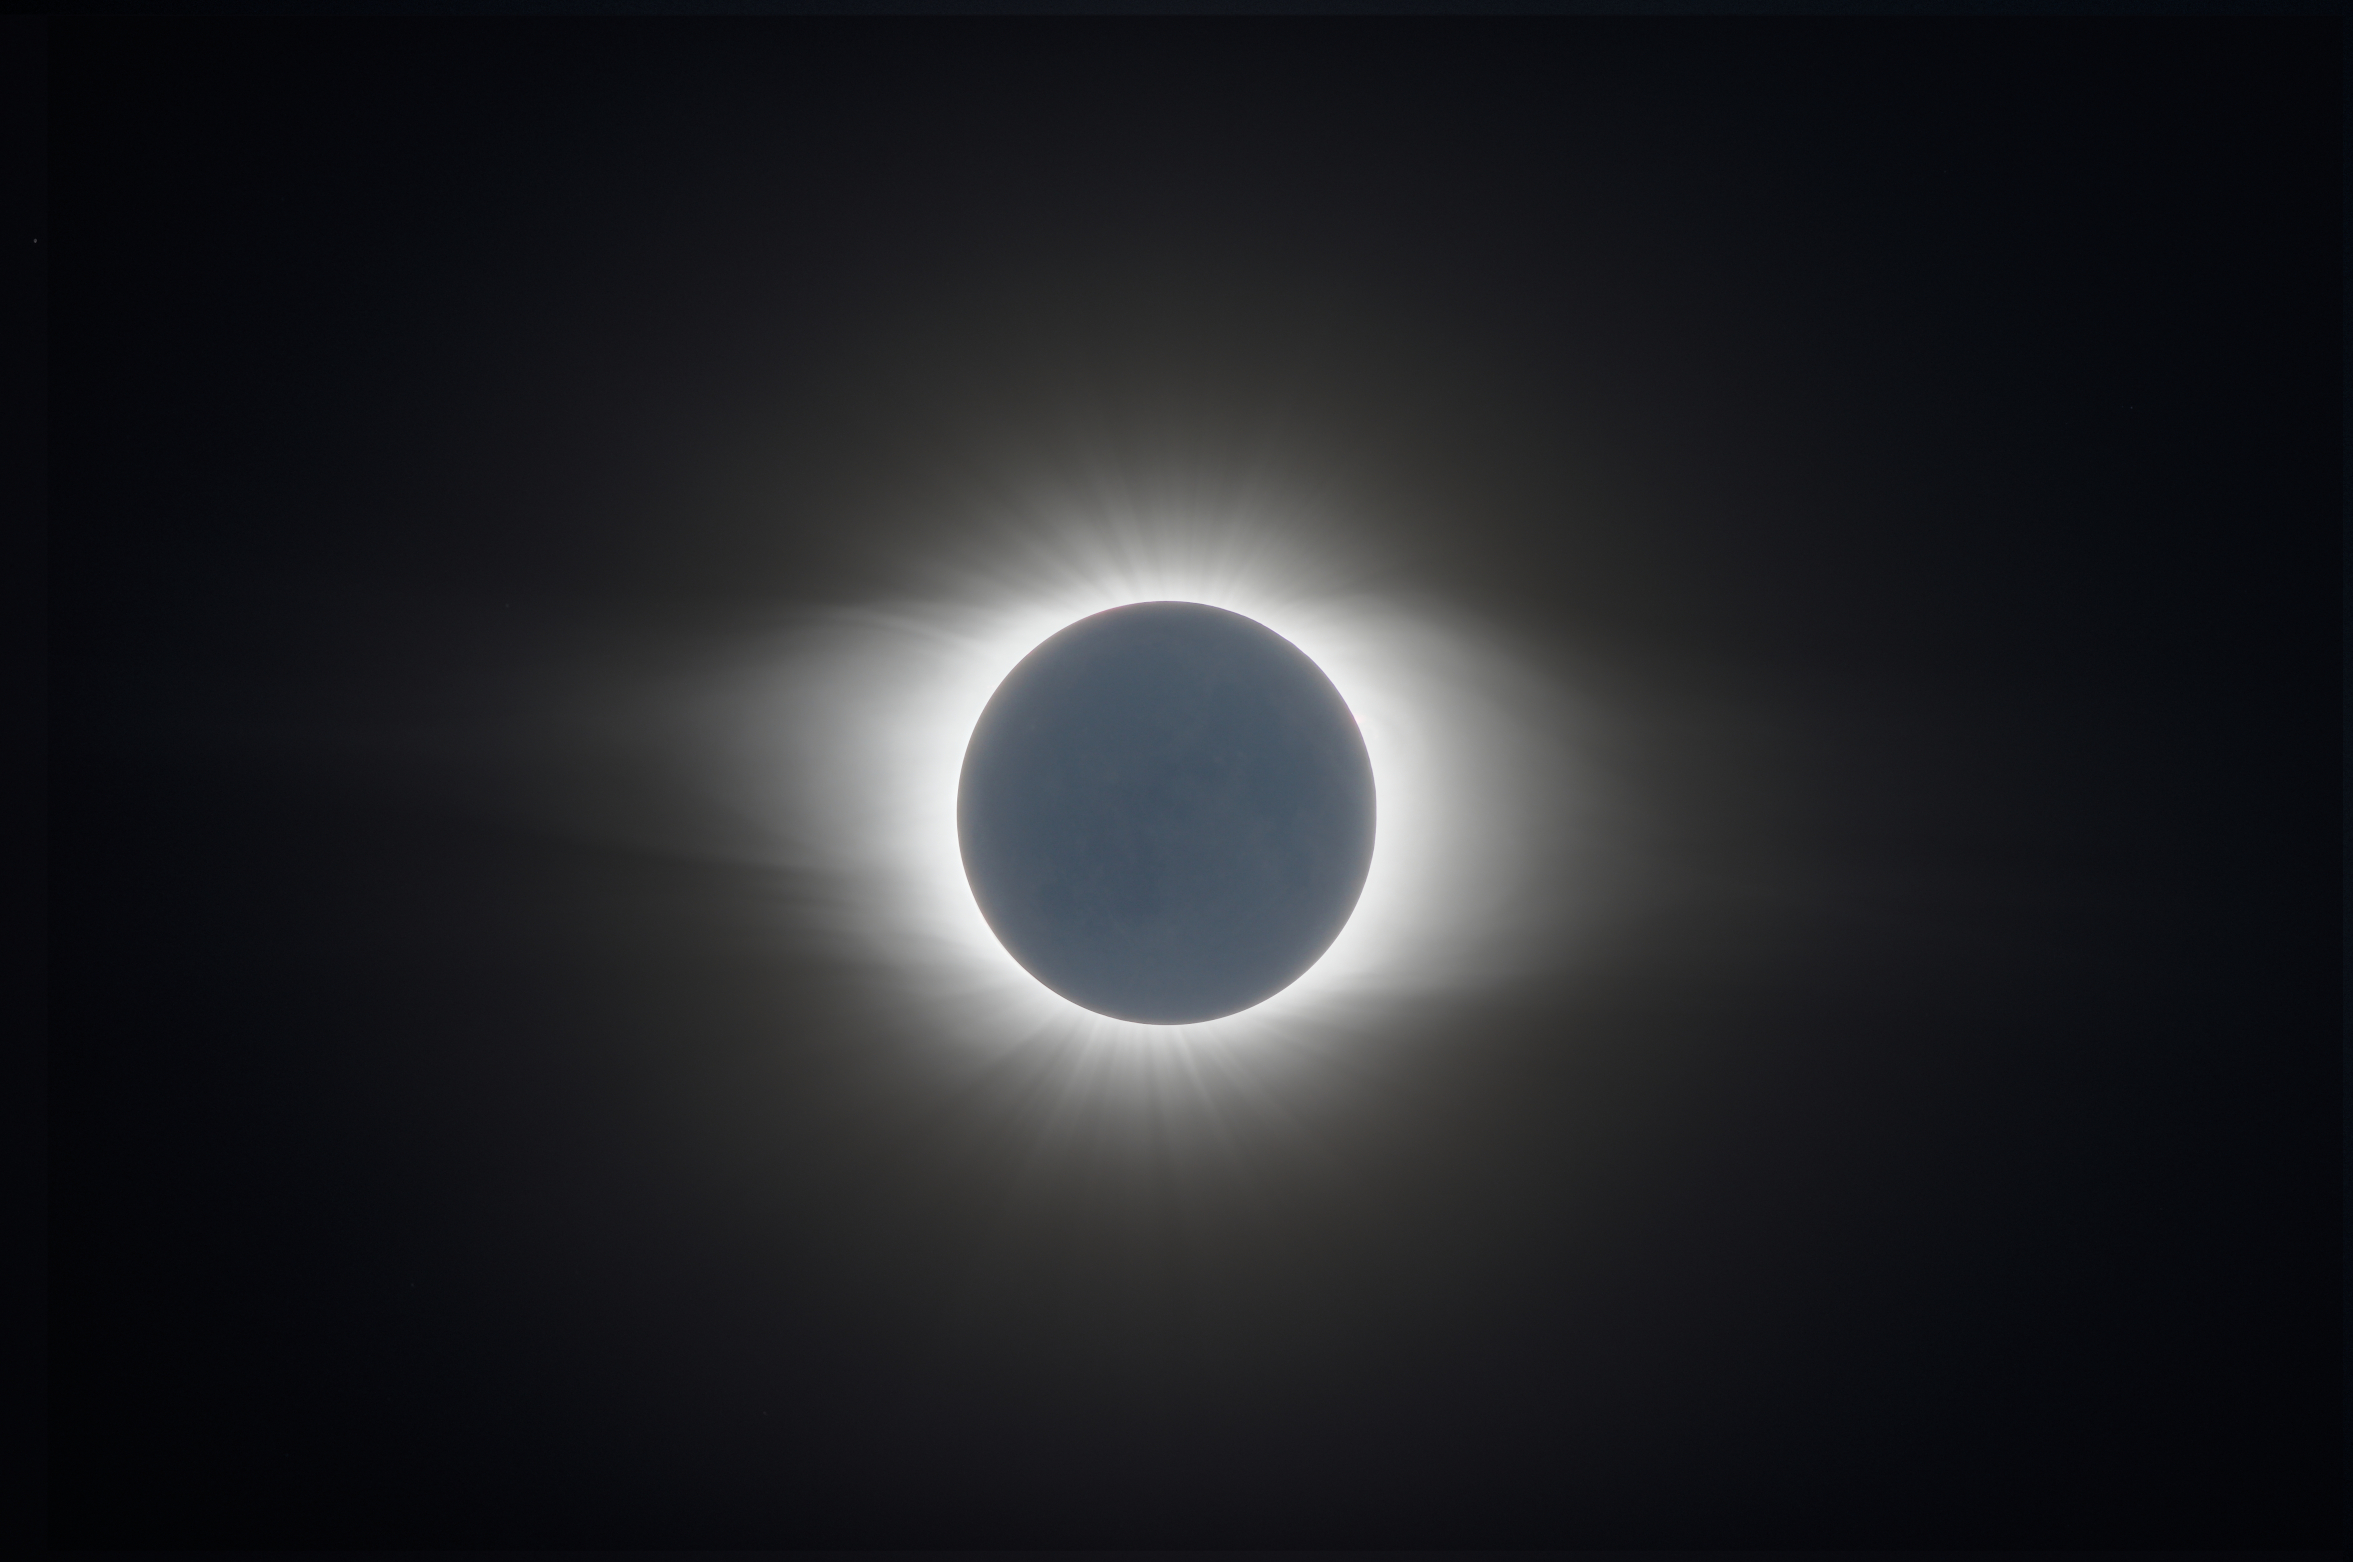 CESAR Total Solar Eclipse 2019 results